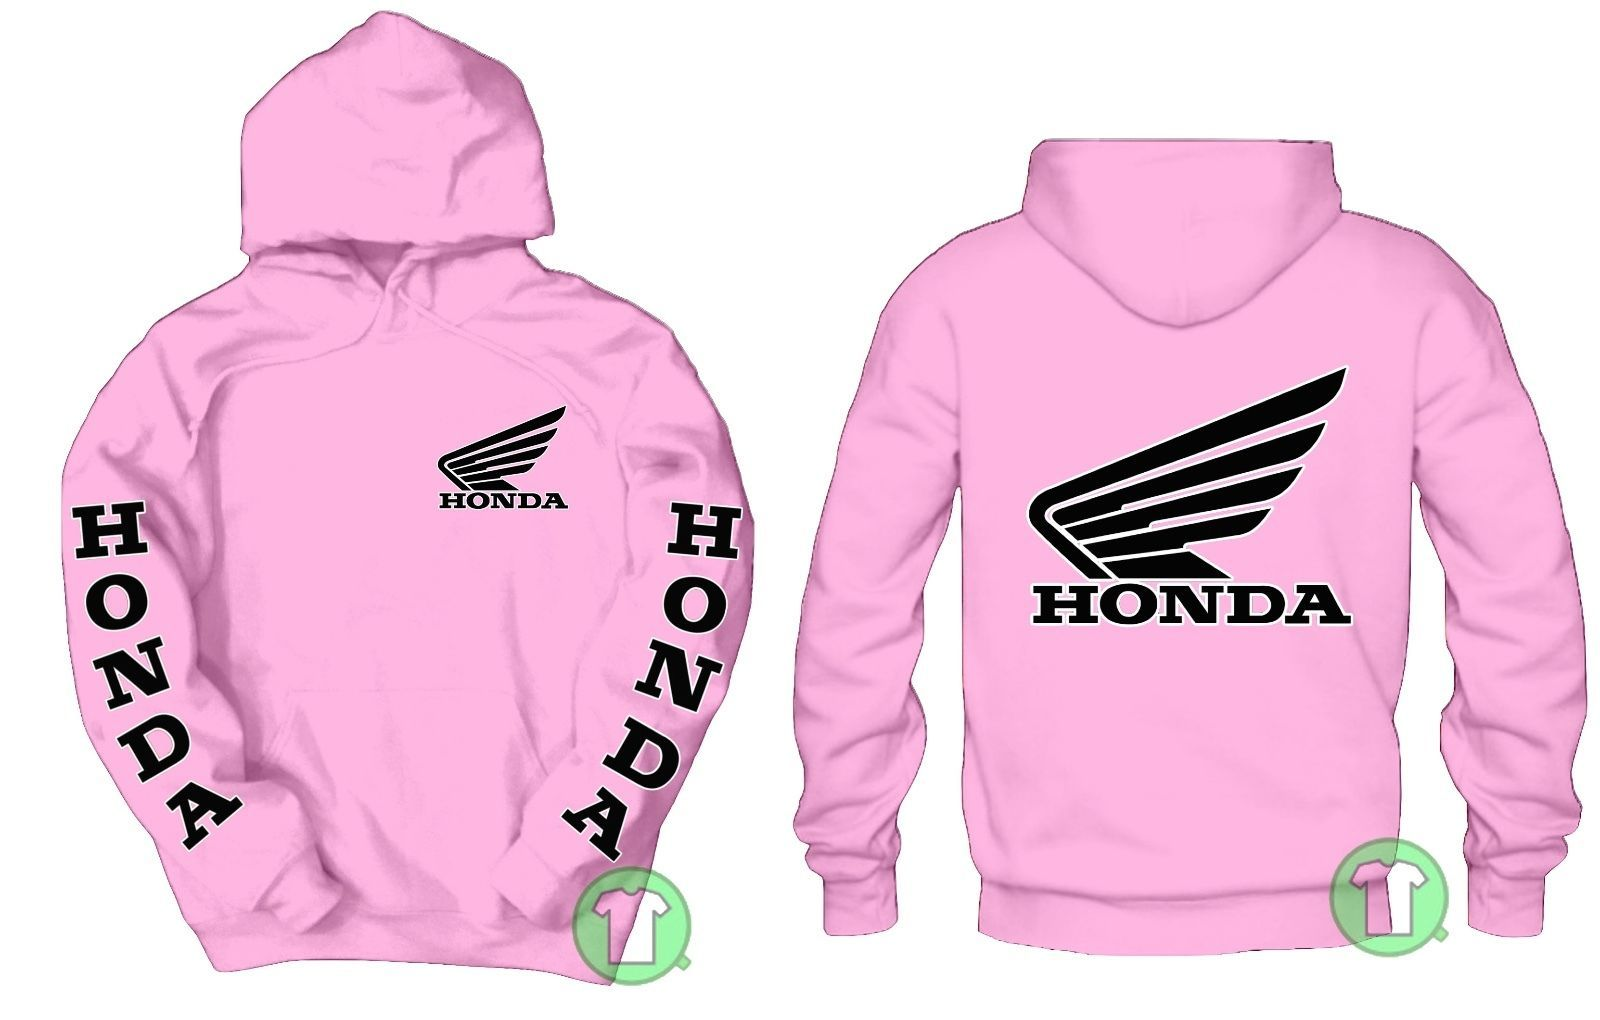 Honda Logo Front & Back Pink Pullover Hoodie Buy Any 2 Get A